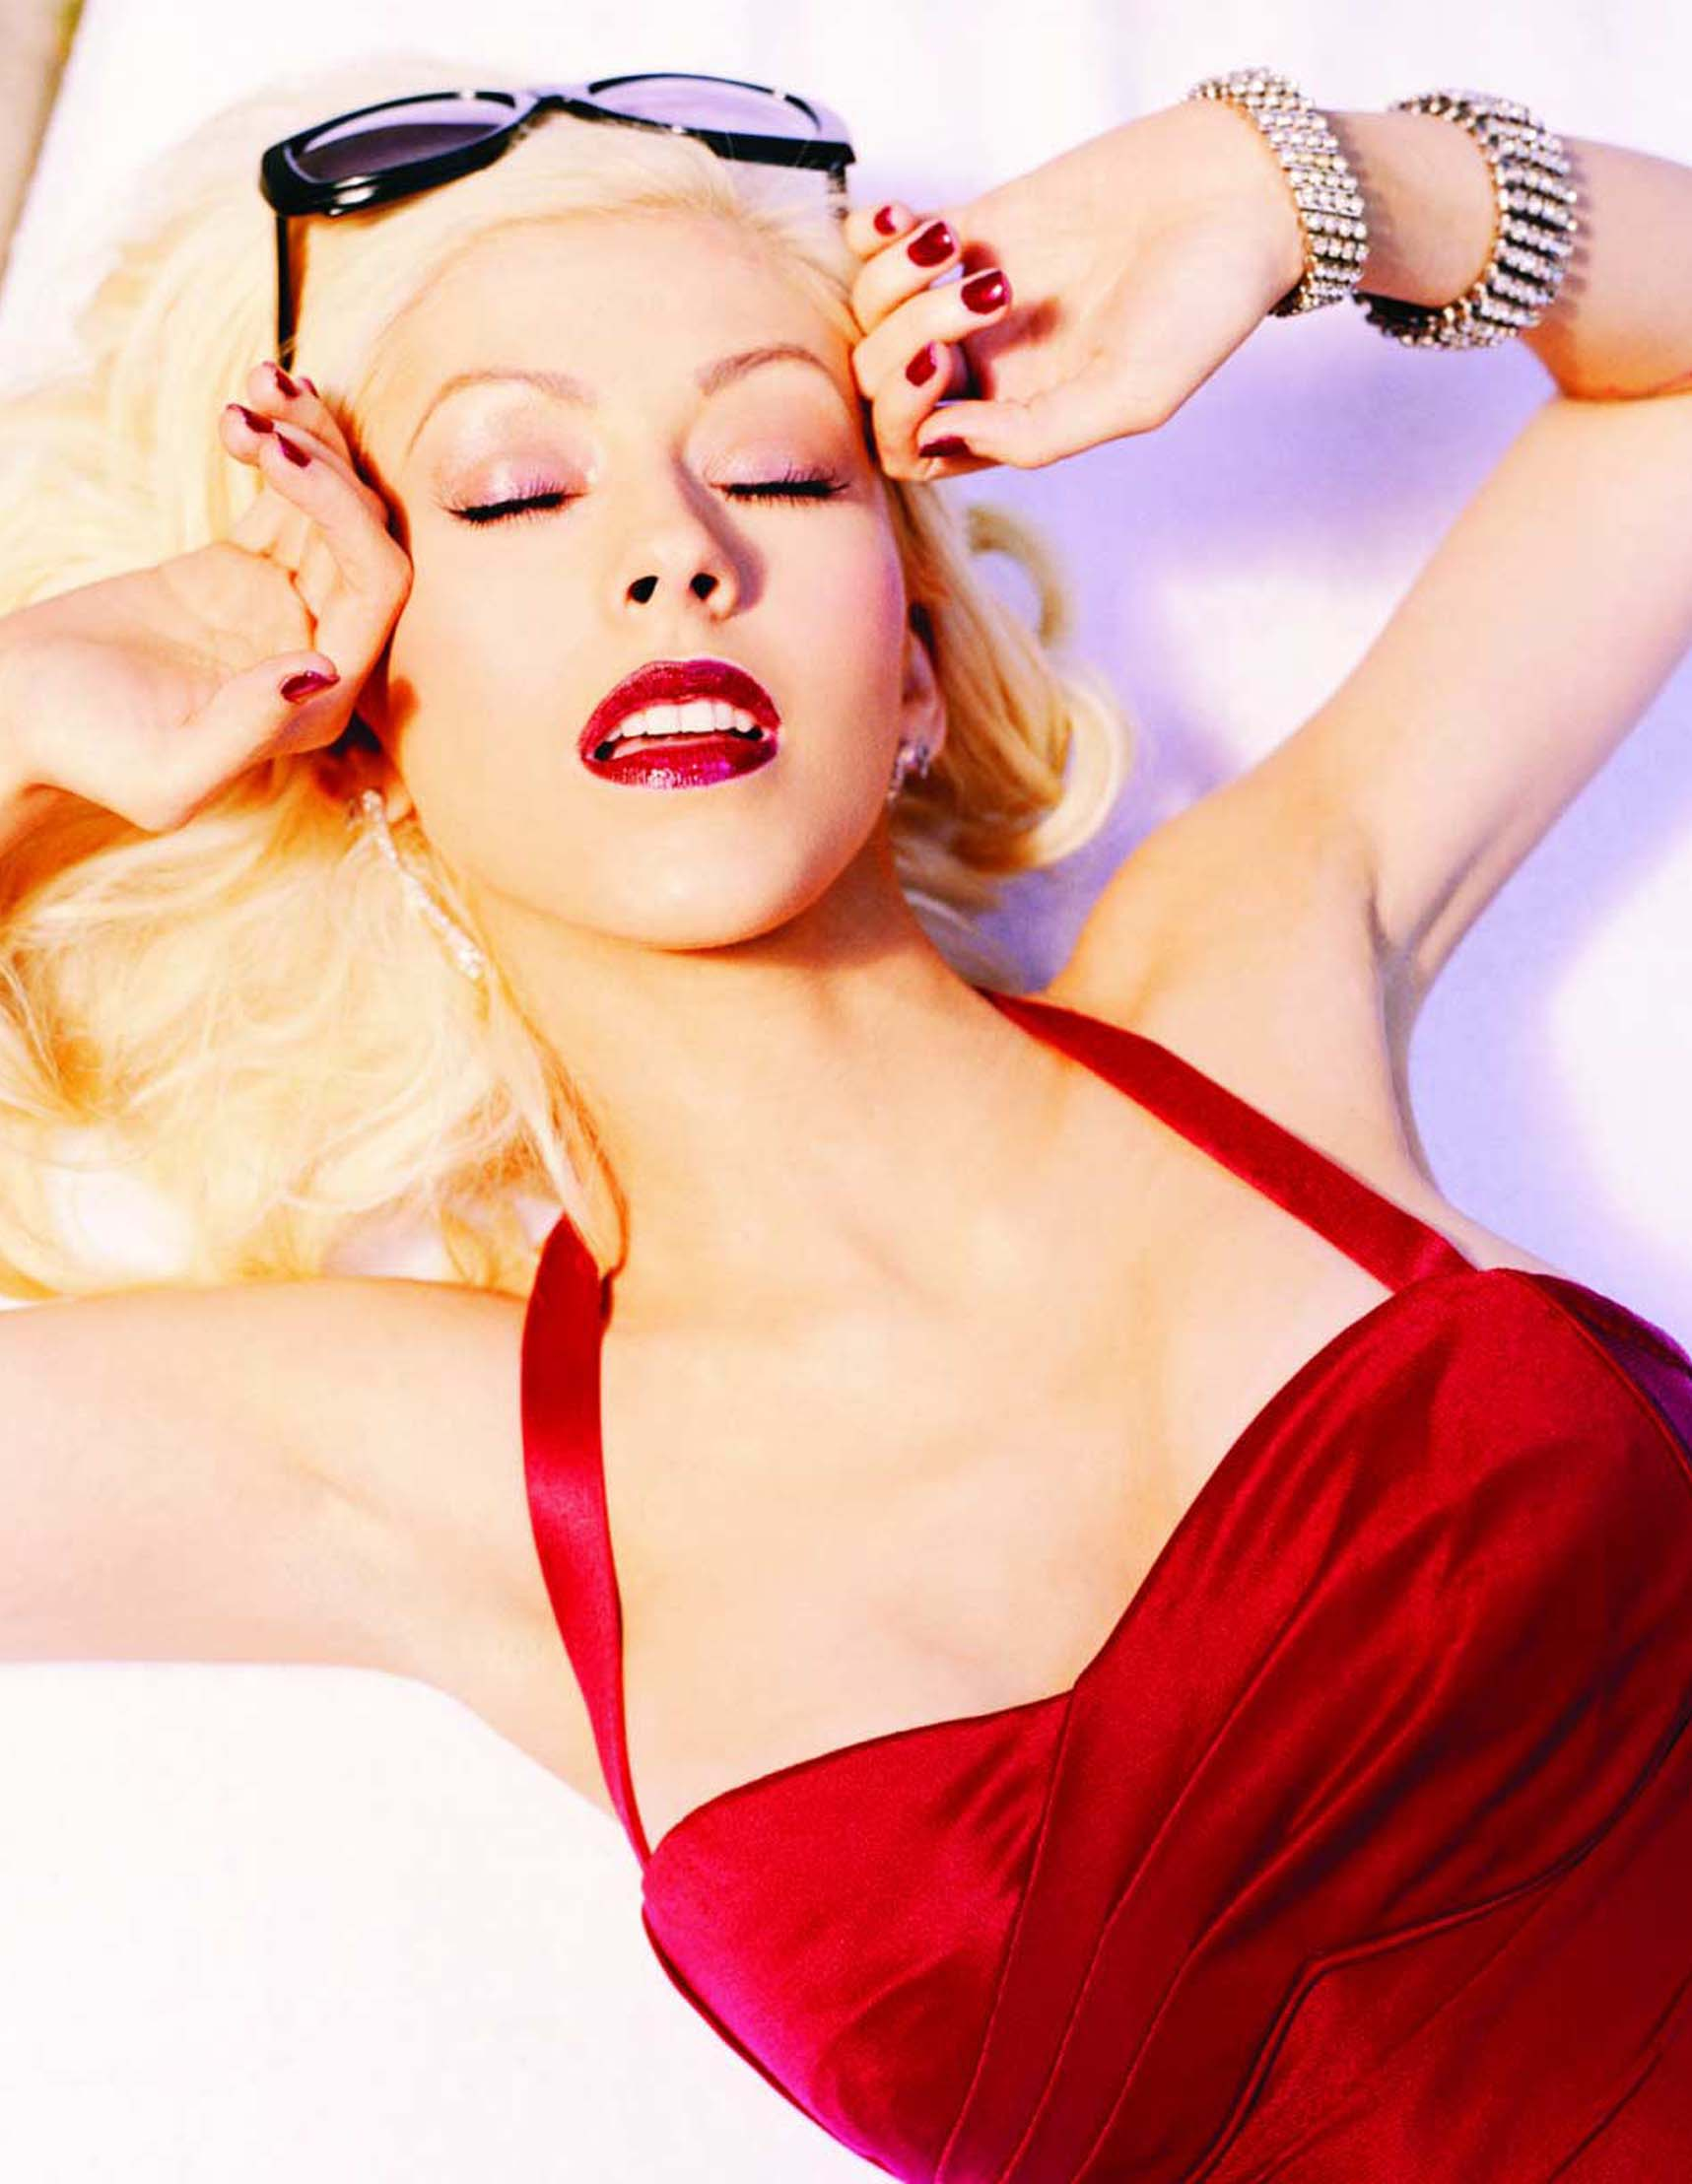 95824_Christina_Aguilera-017735_26Back_to_Basics30_Promotional_Pictures_122_768lo.jpg